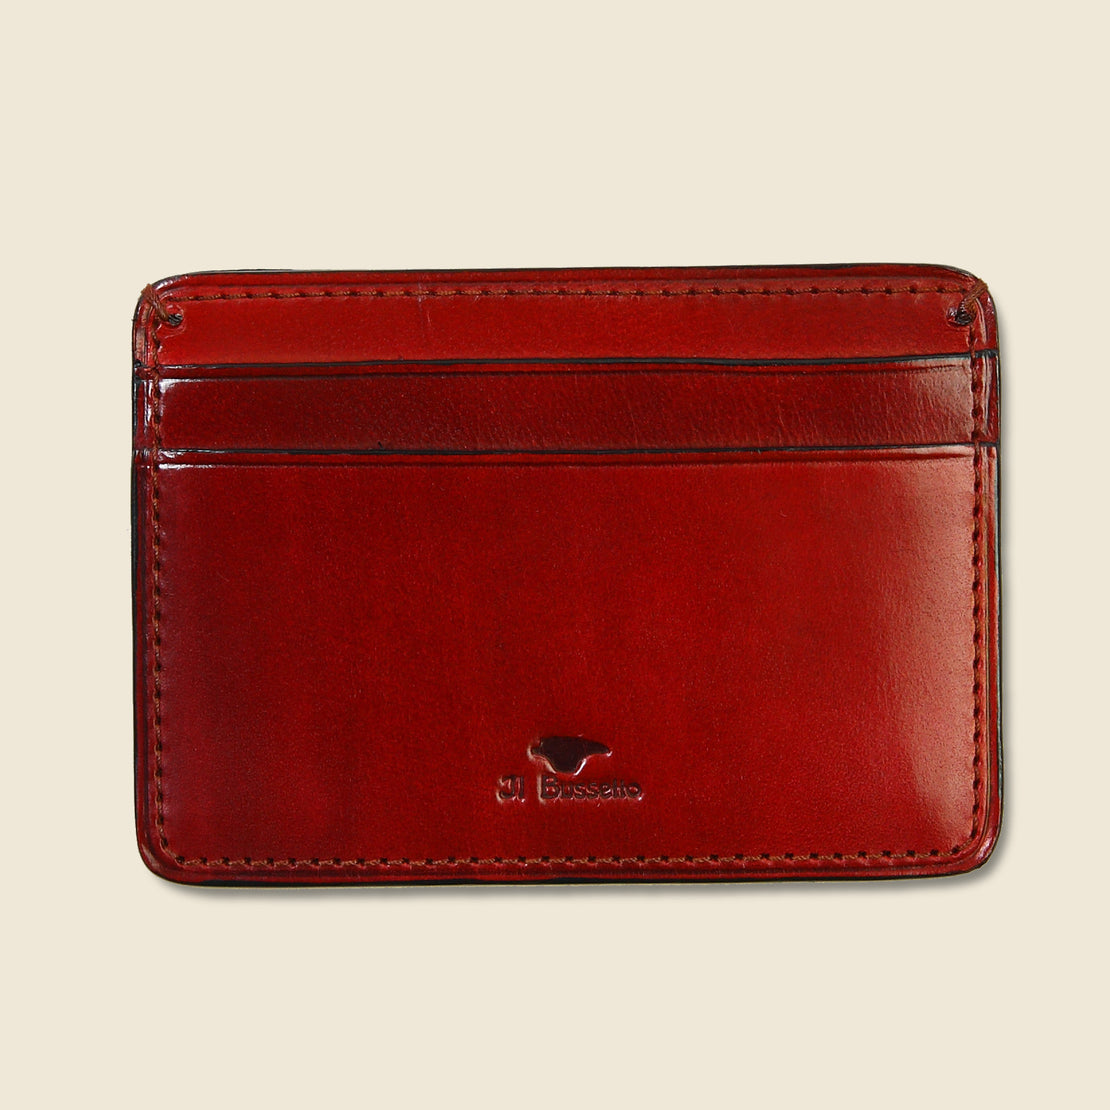 Il Bussetto Credit Card Case - Cherry